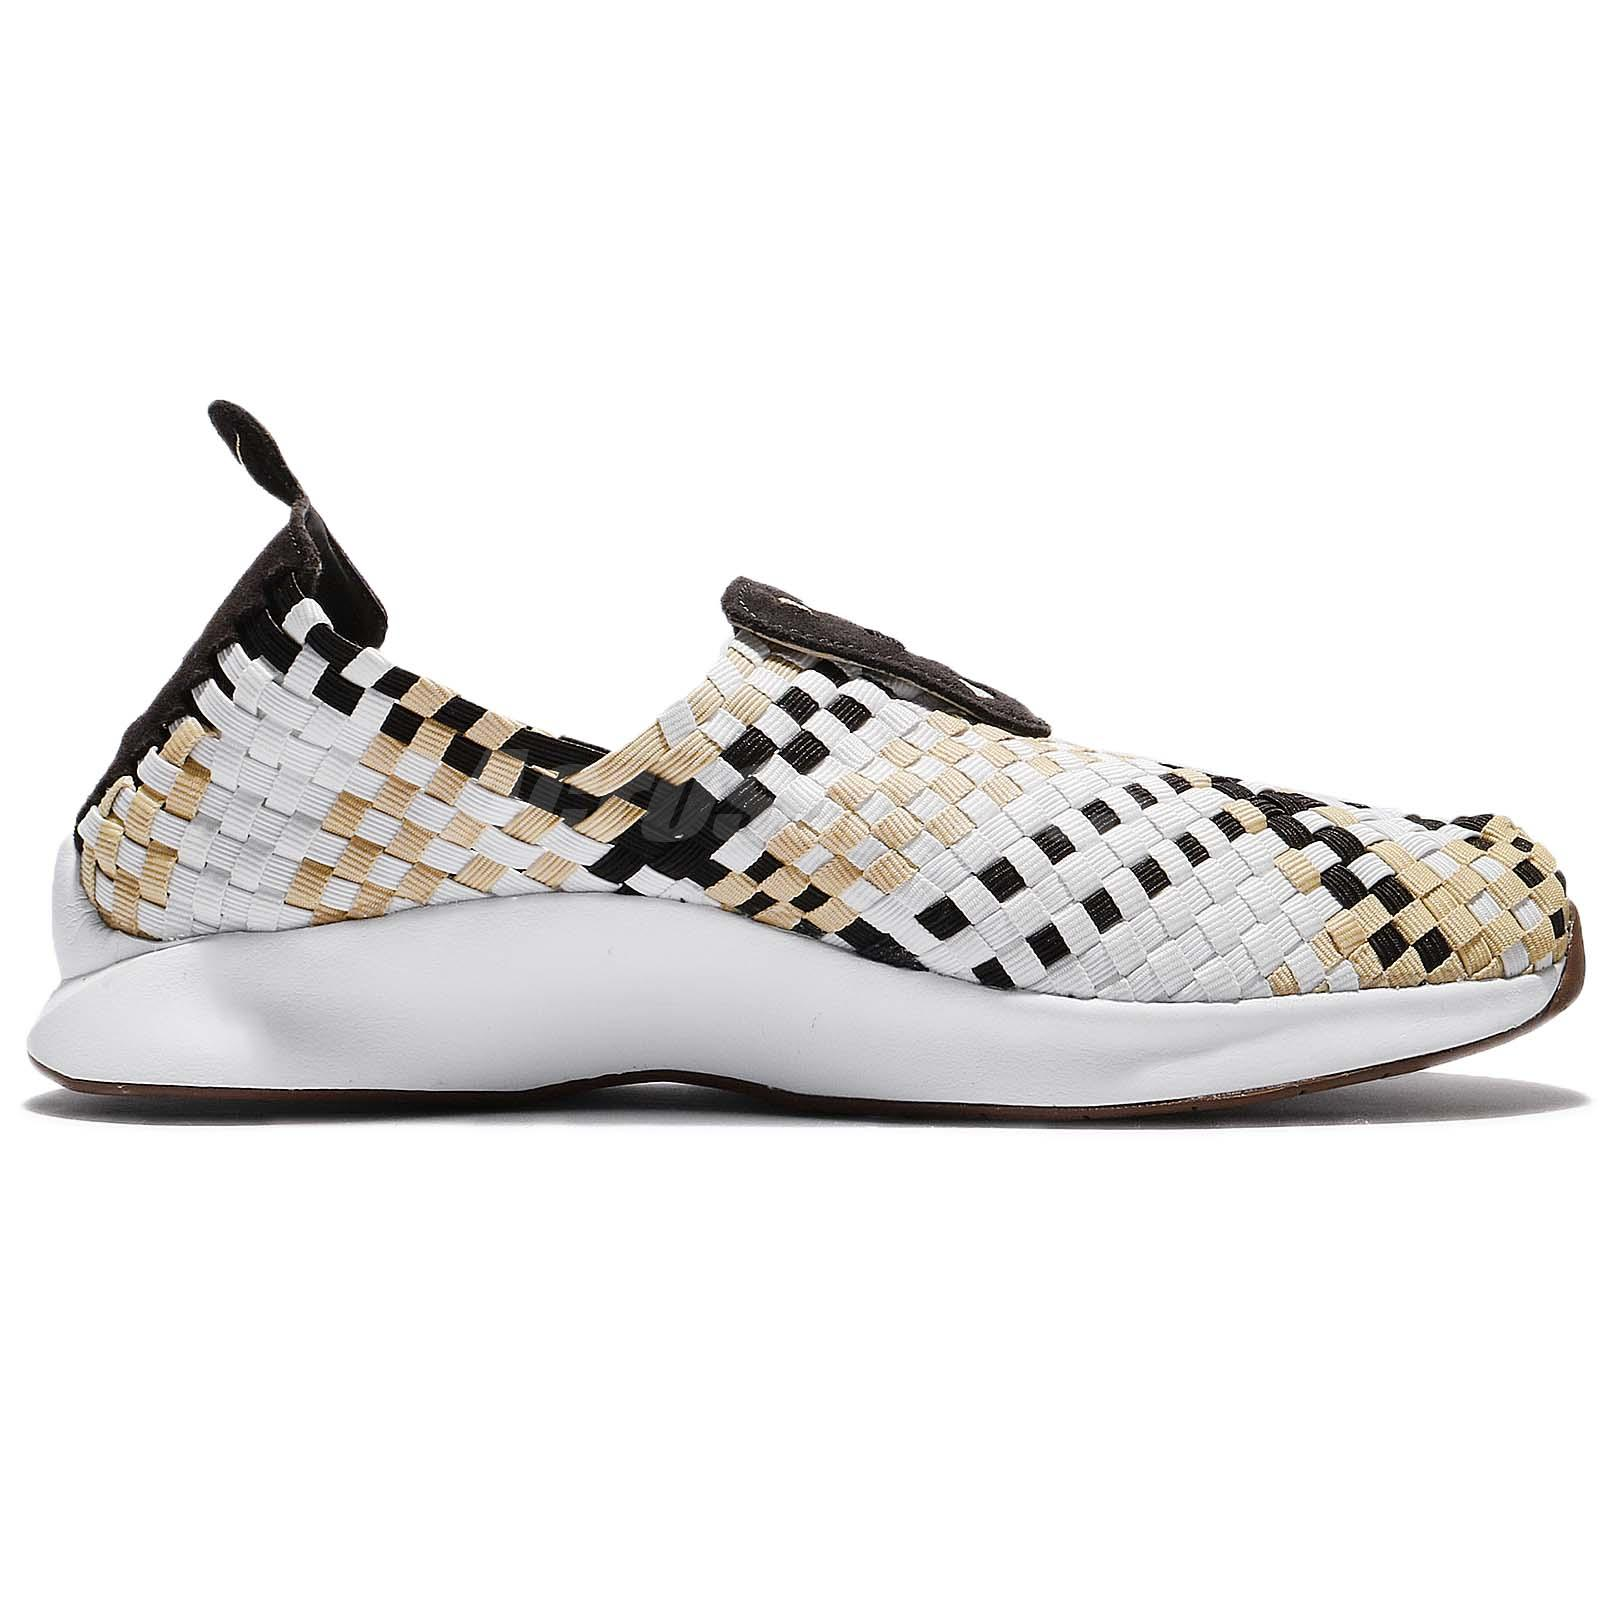 90b6ae7ea4c8 Nike Air Woven Velvet Brown Sail Men Classic Shoes Sneakers Slip-On ...